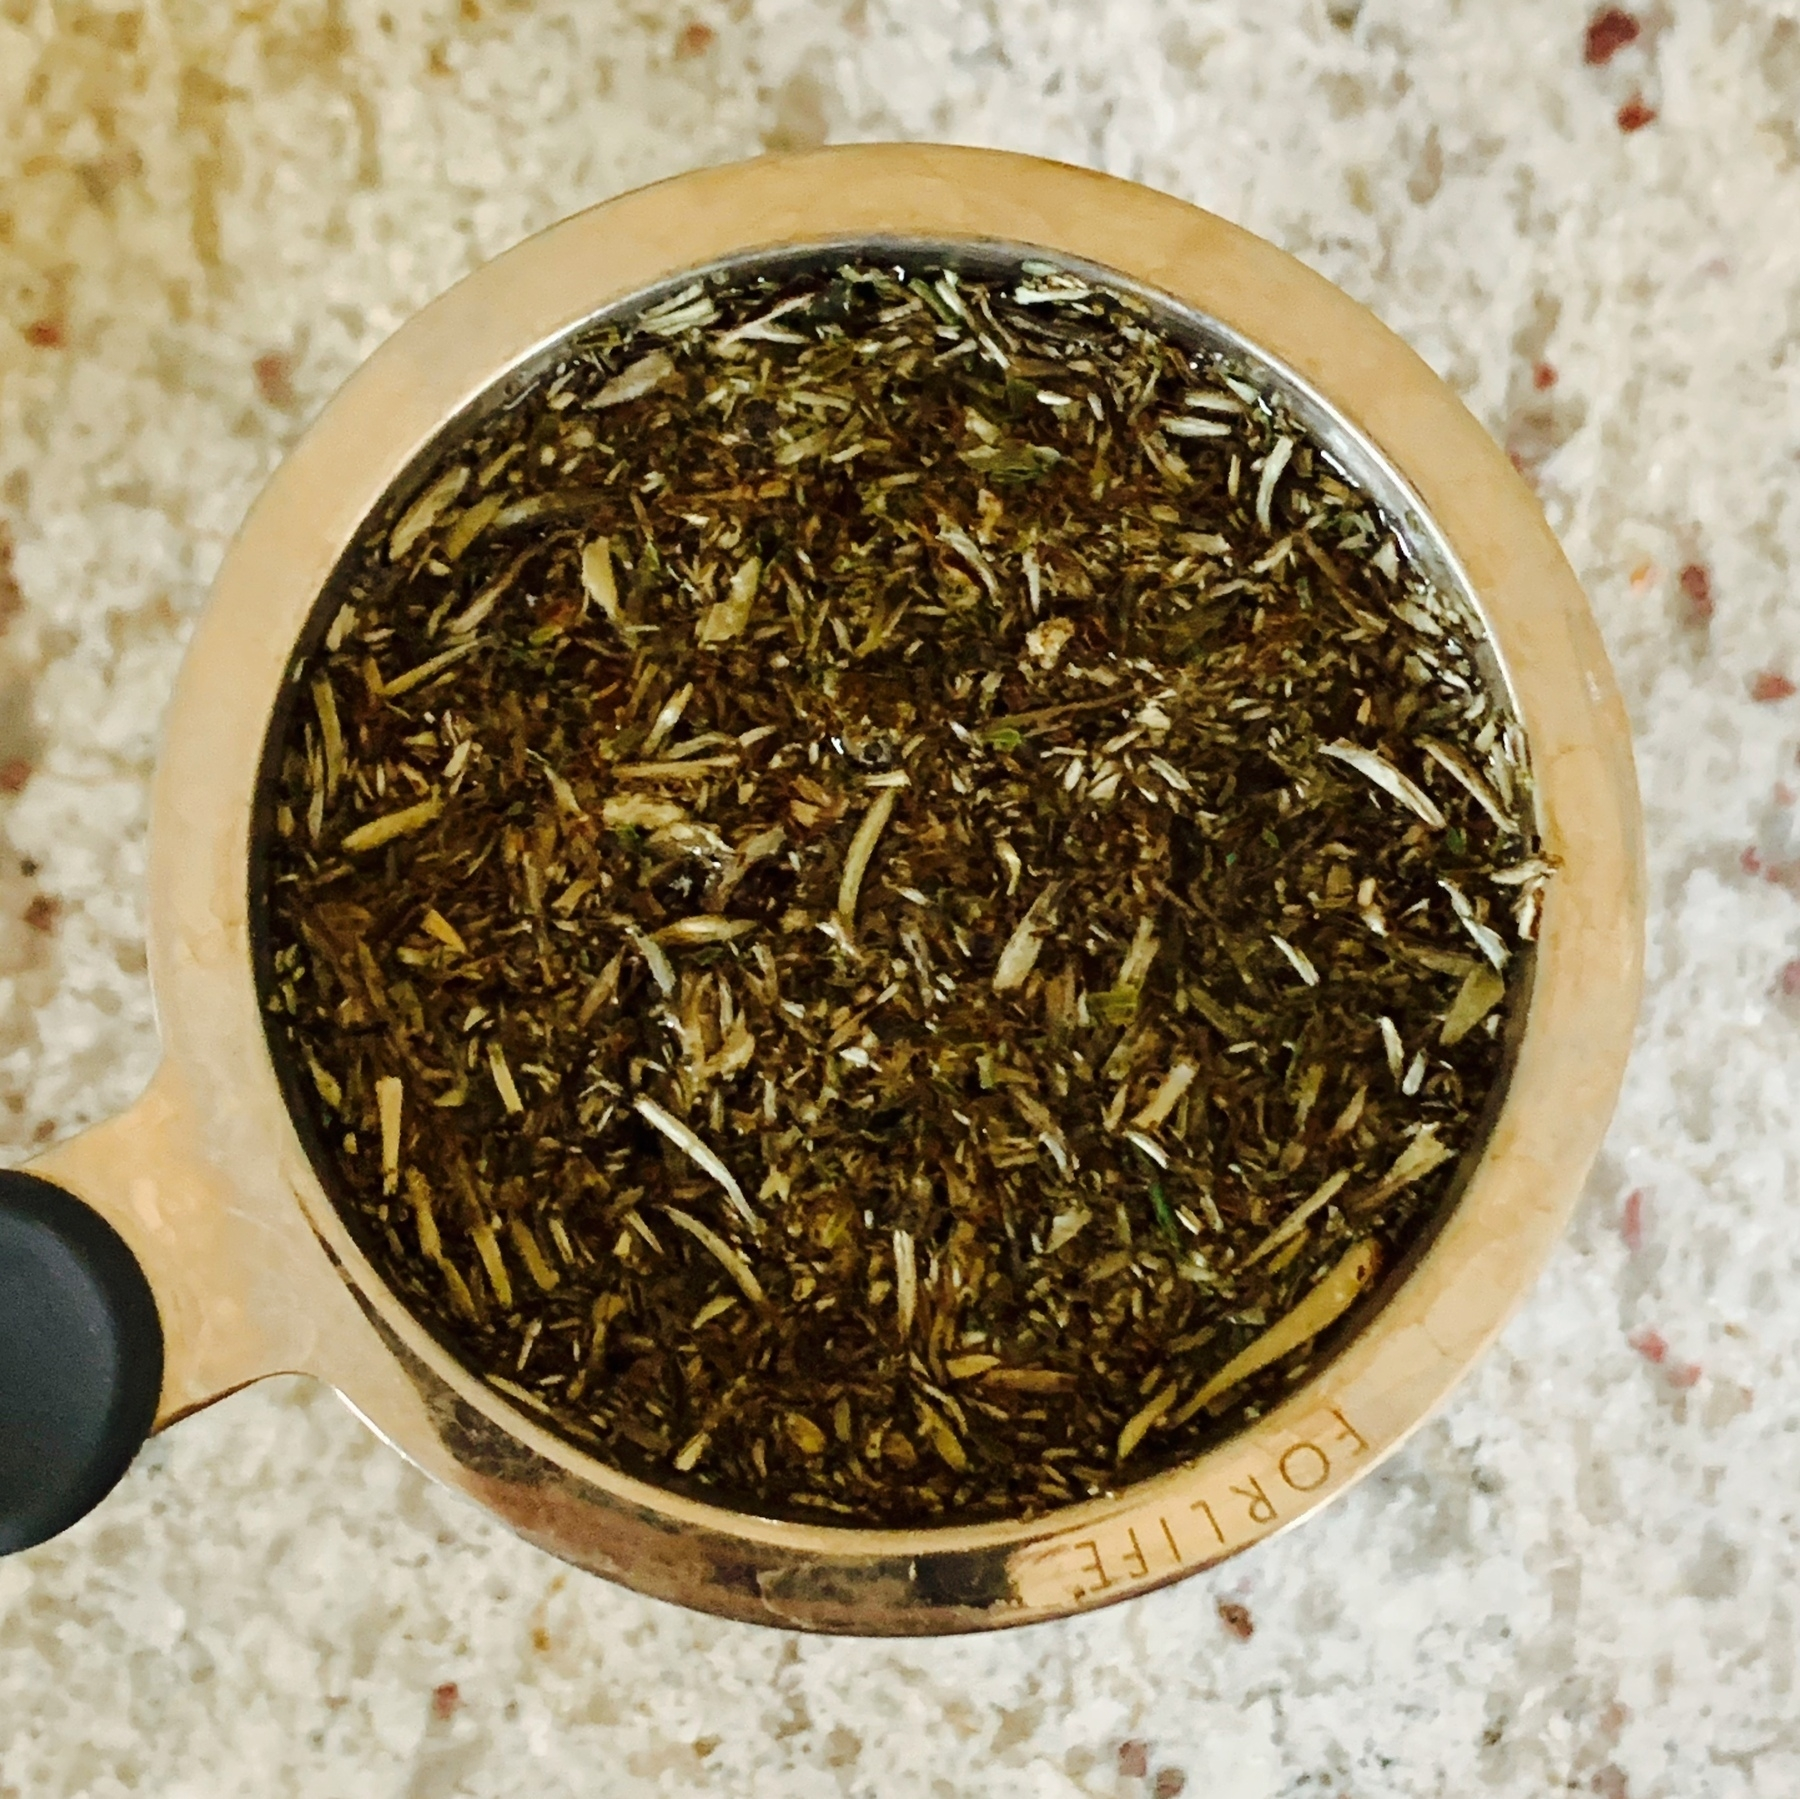 top down view of steeping tea leaves